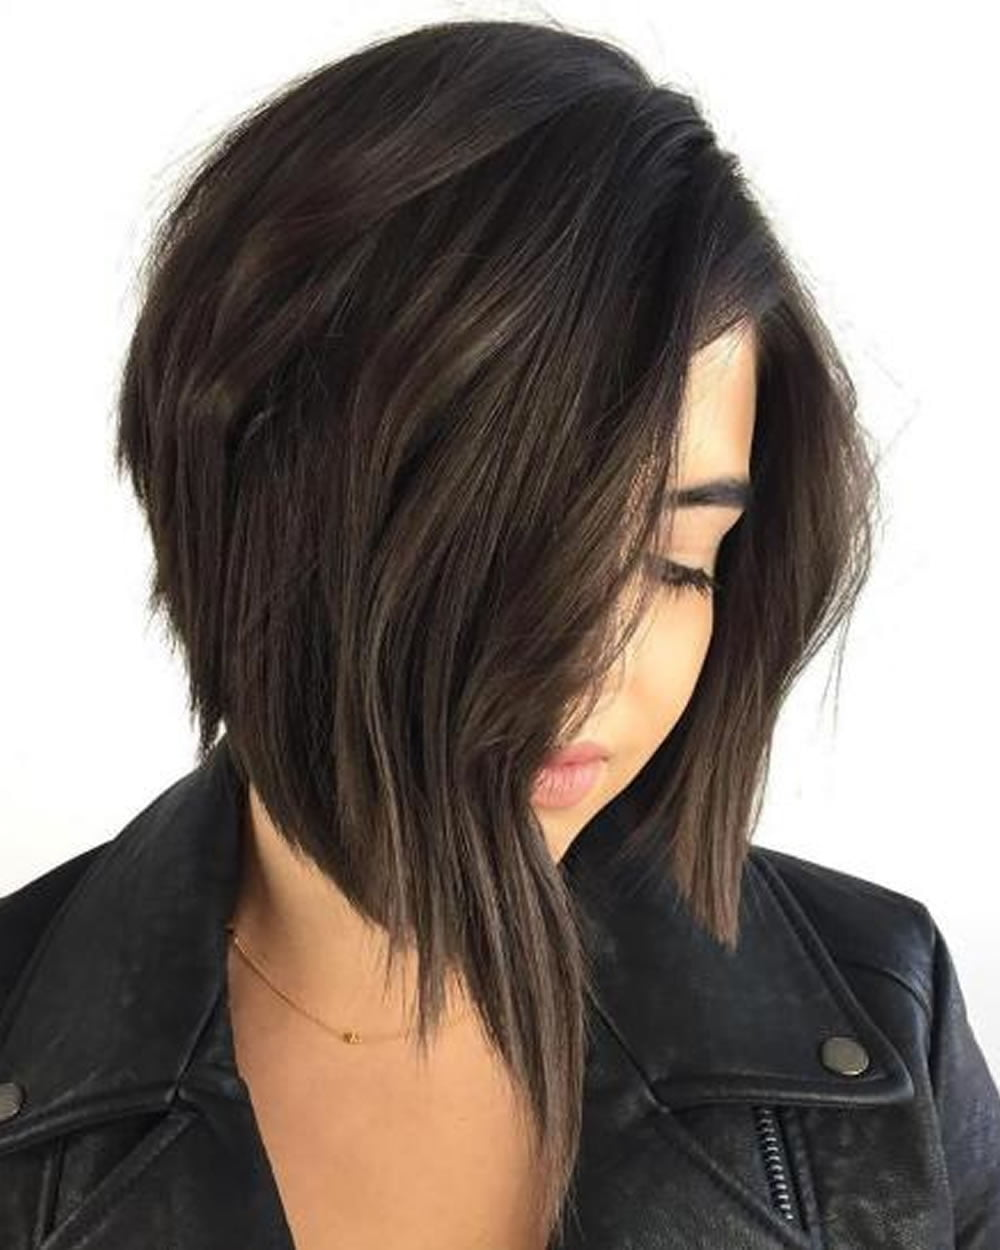 Hairstyle for school for short hair